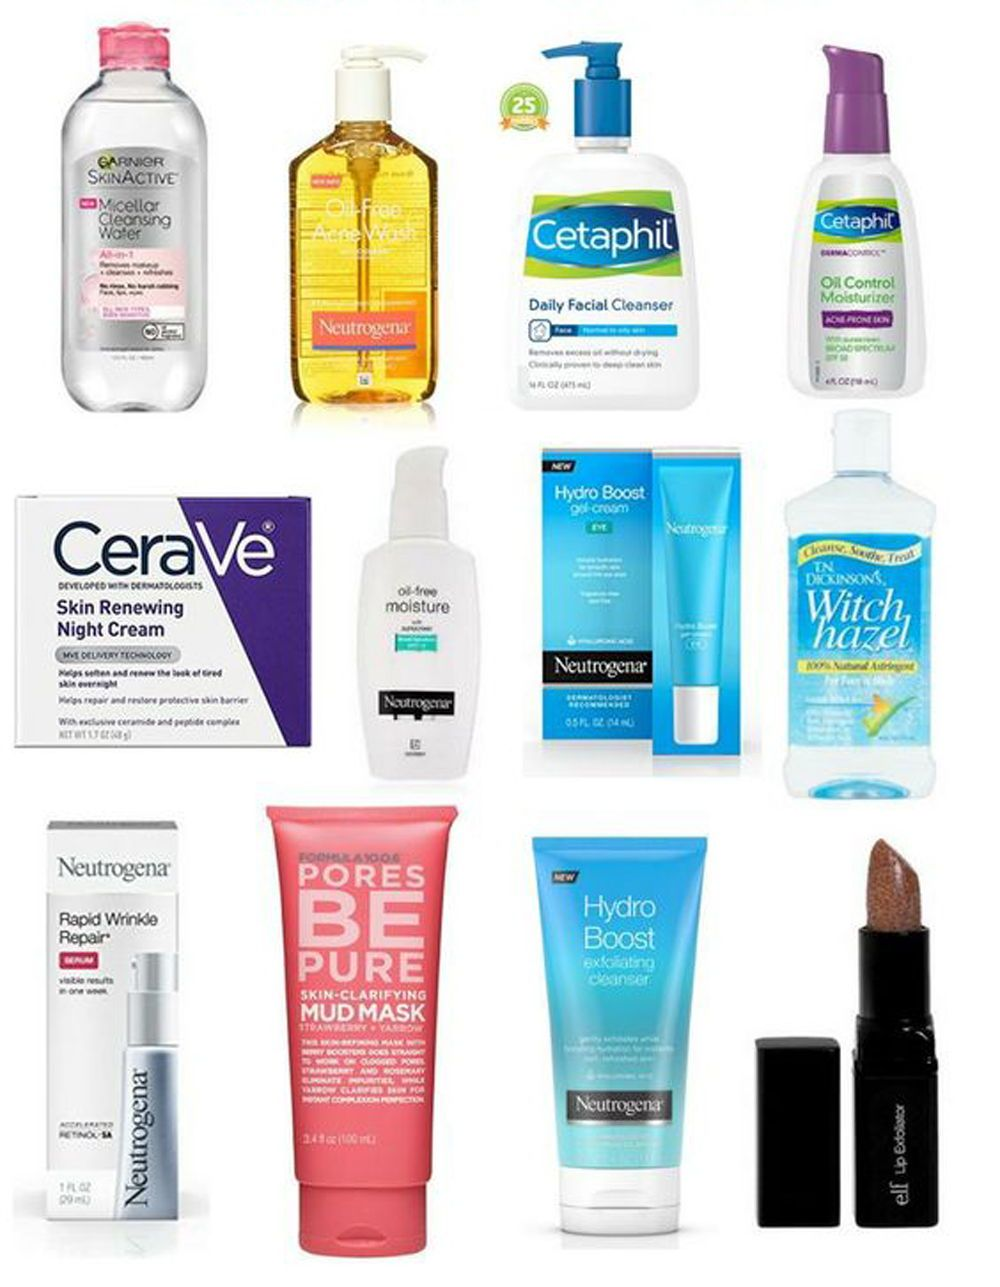 If You Are Searching For Some Amazing And Fantastic Skincare Products For Your Oily Skin You Shou Oily Skin Care Routine Oily Skin Care Skincare For Oily Skin